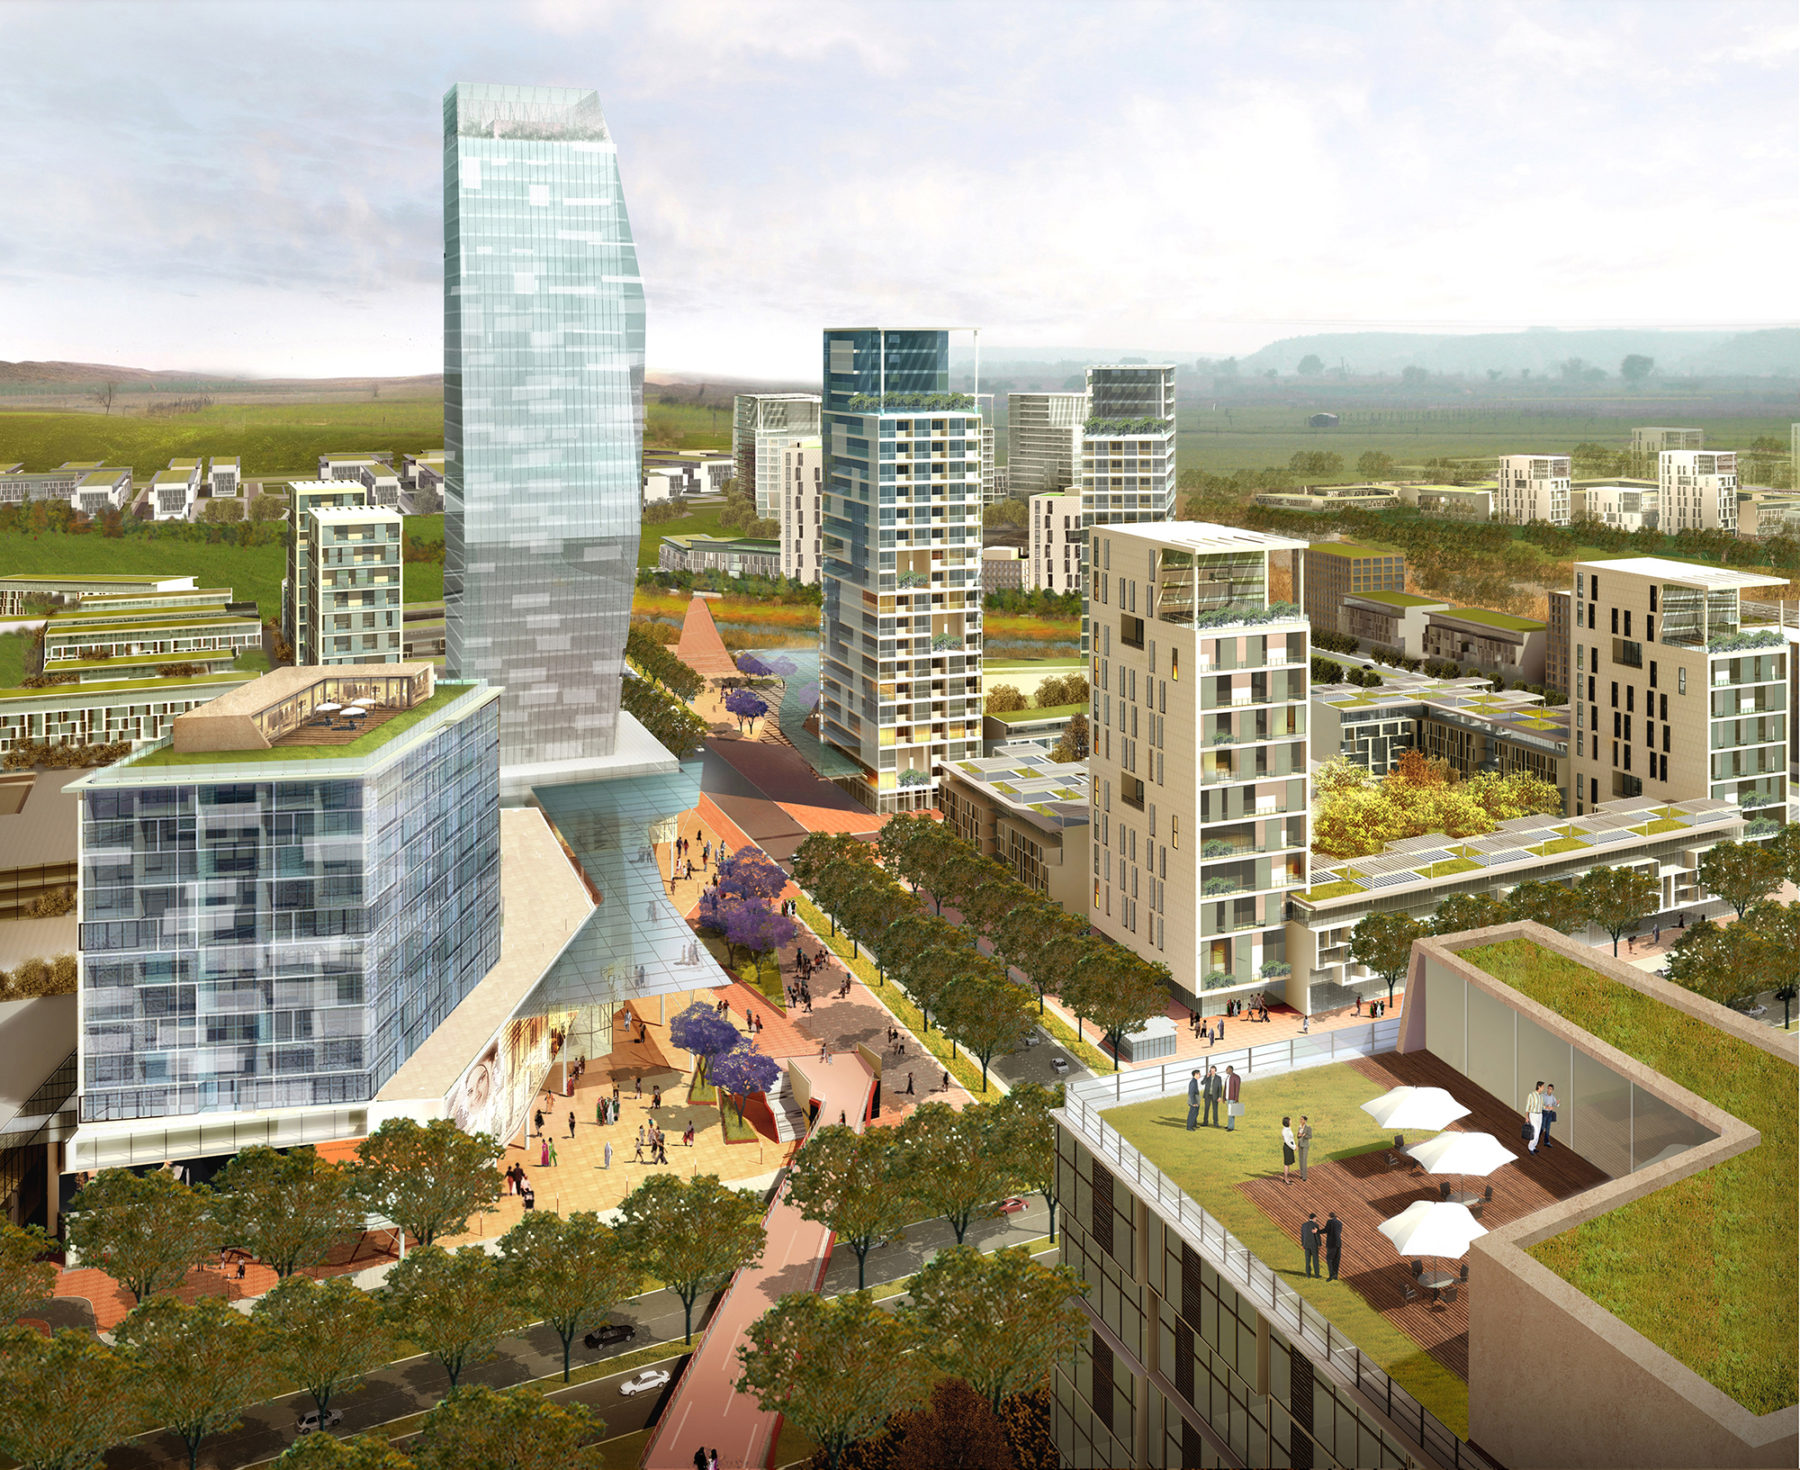 Aerial rendering of the community overlooking towers